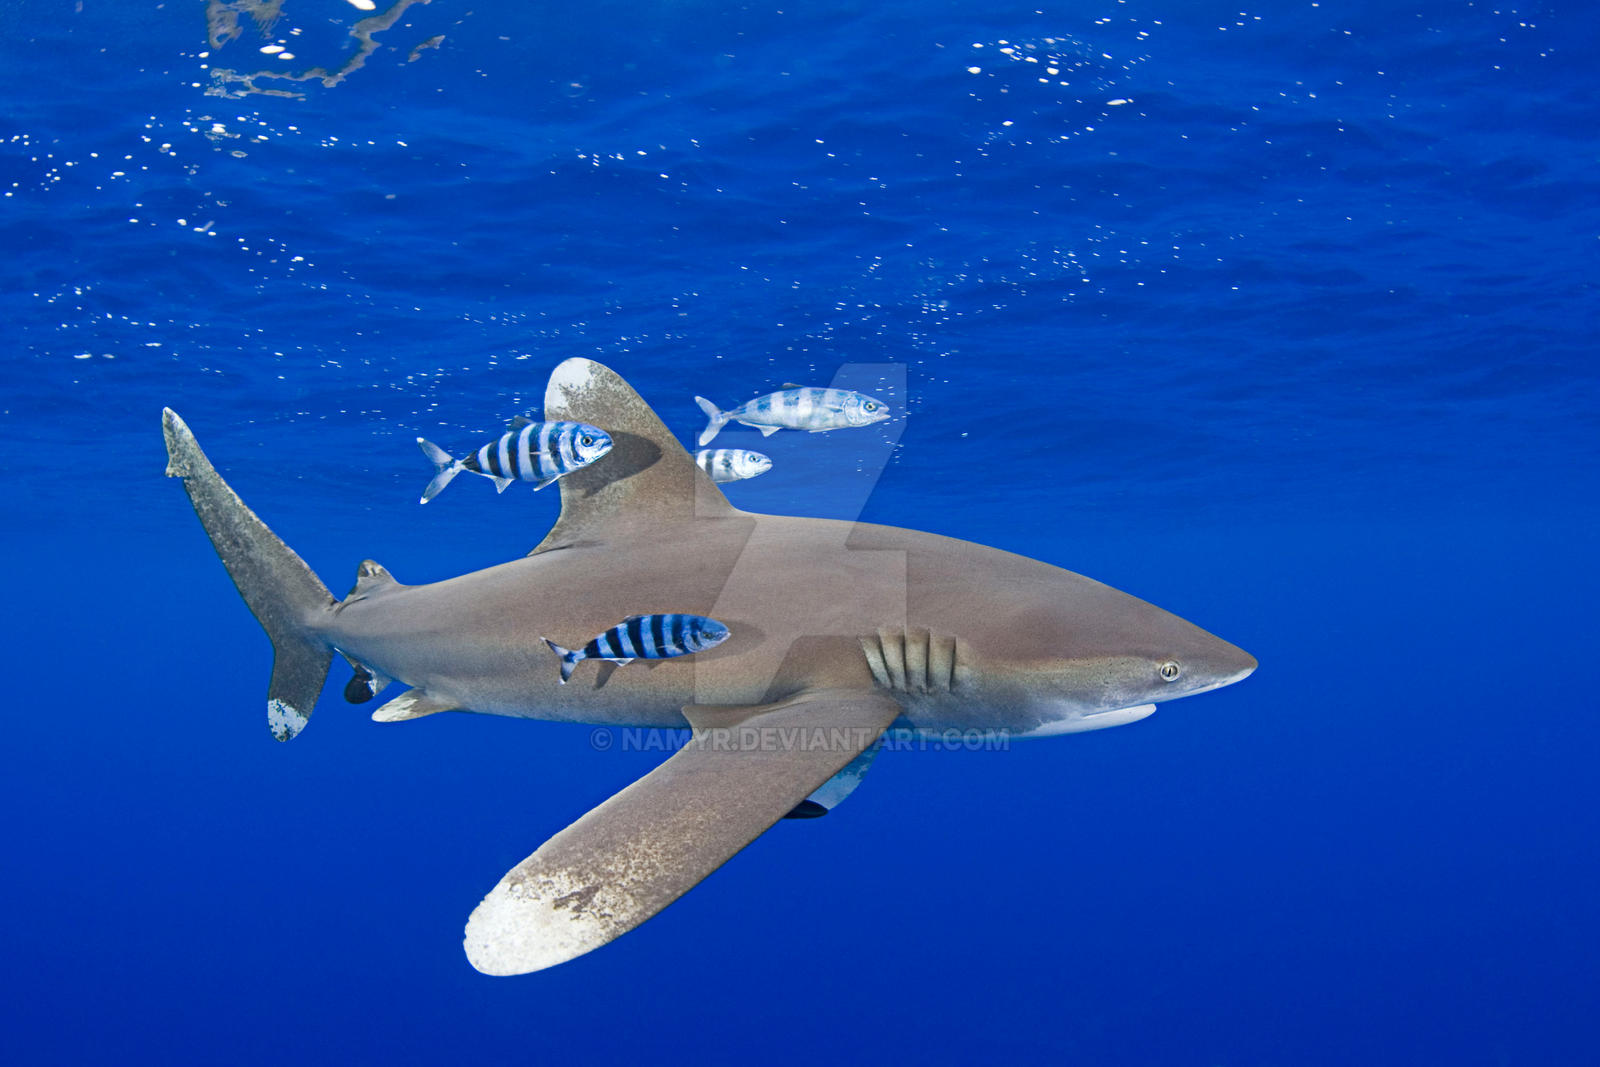 Shark Species ID: Oceanic WhiteTip Shark by Namyr